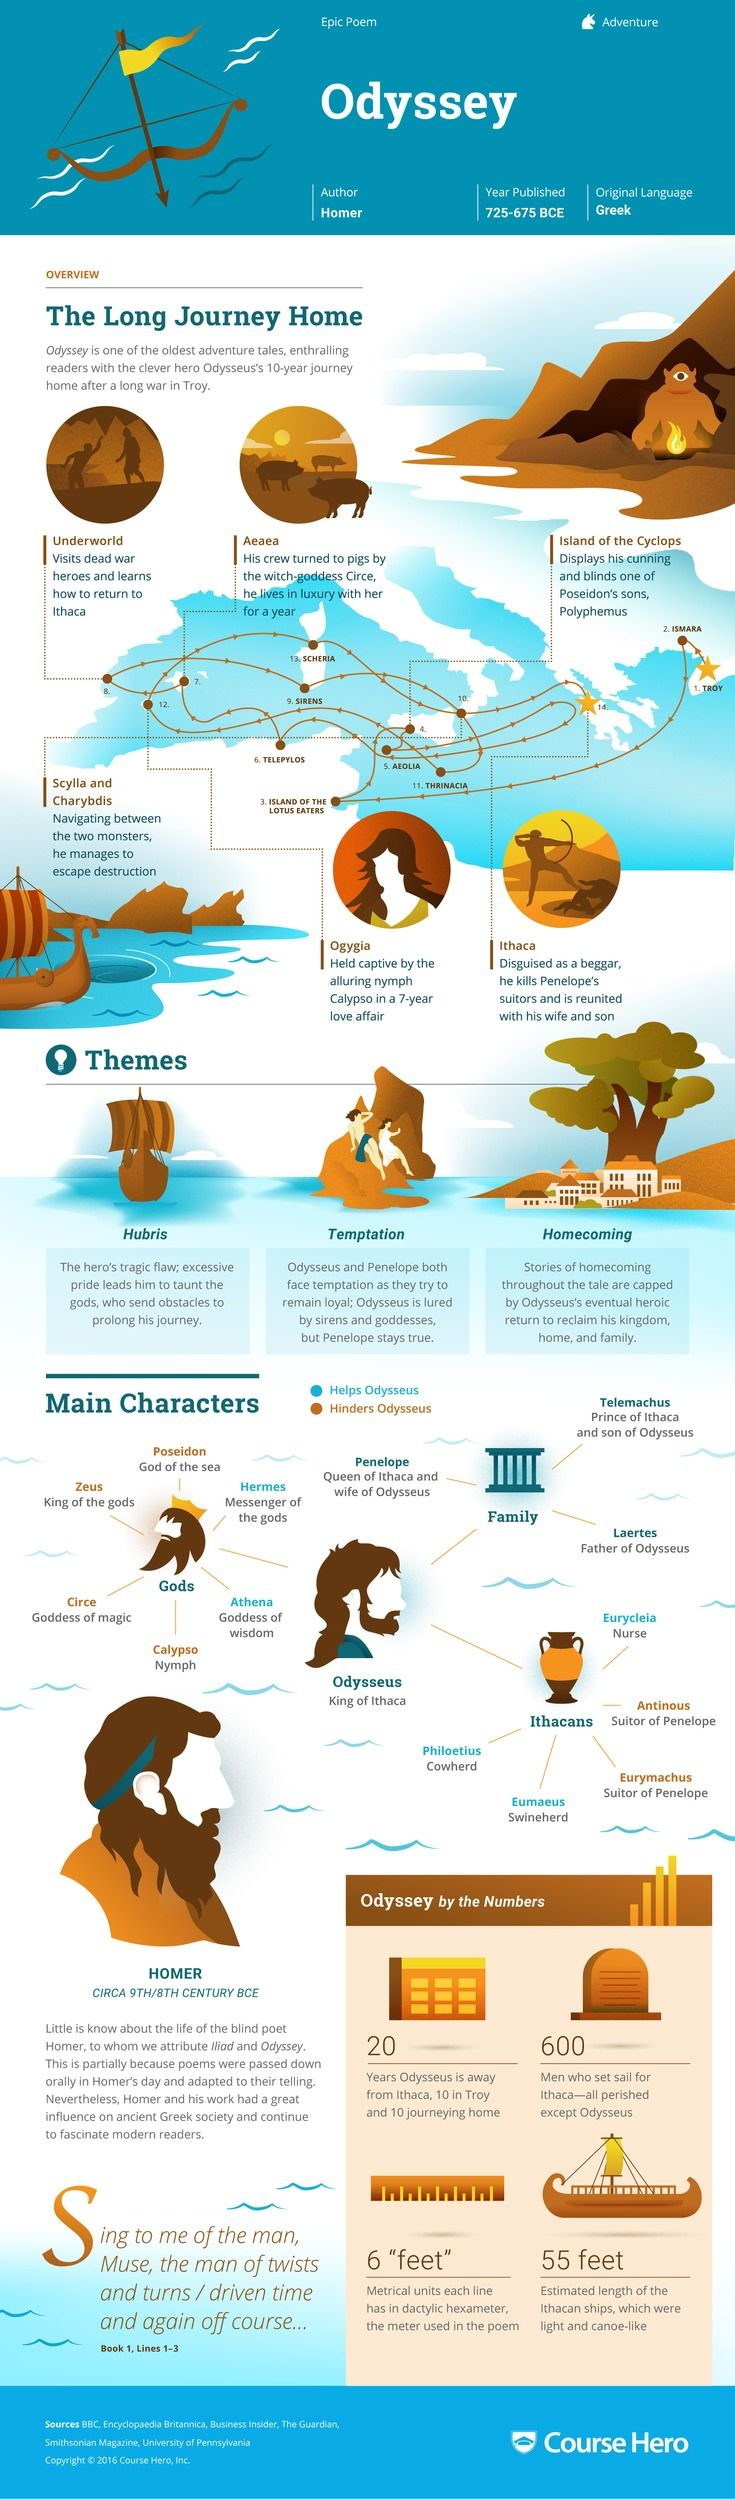 This 'The Odyssey' infographic from Course Hero is as awesome as it is helpful. Check it out!